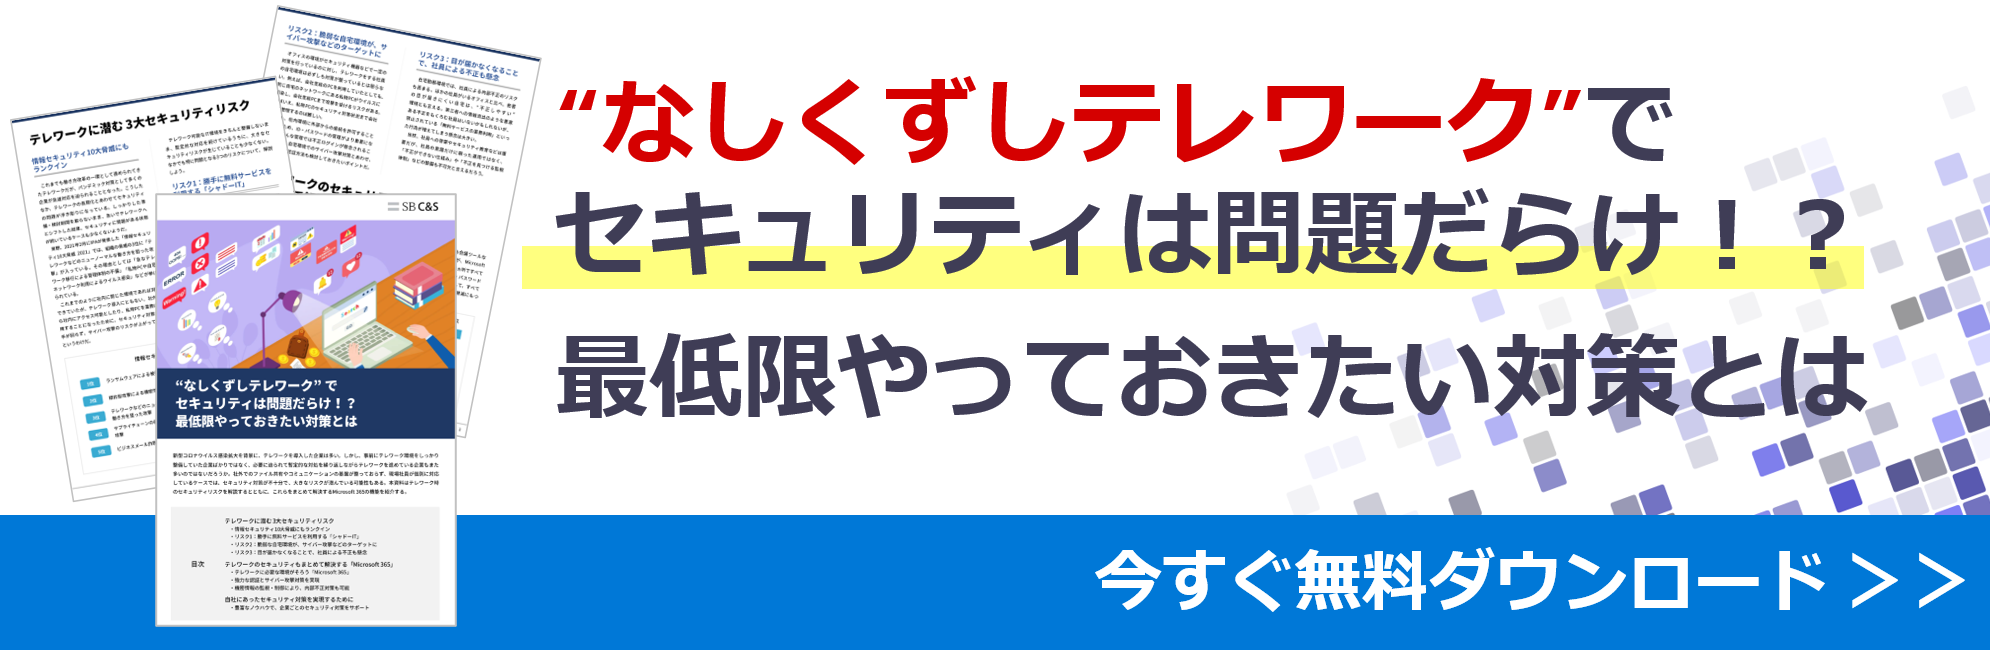 securitywpDLsokushin(1).png